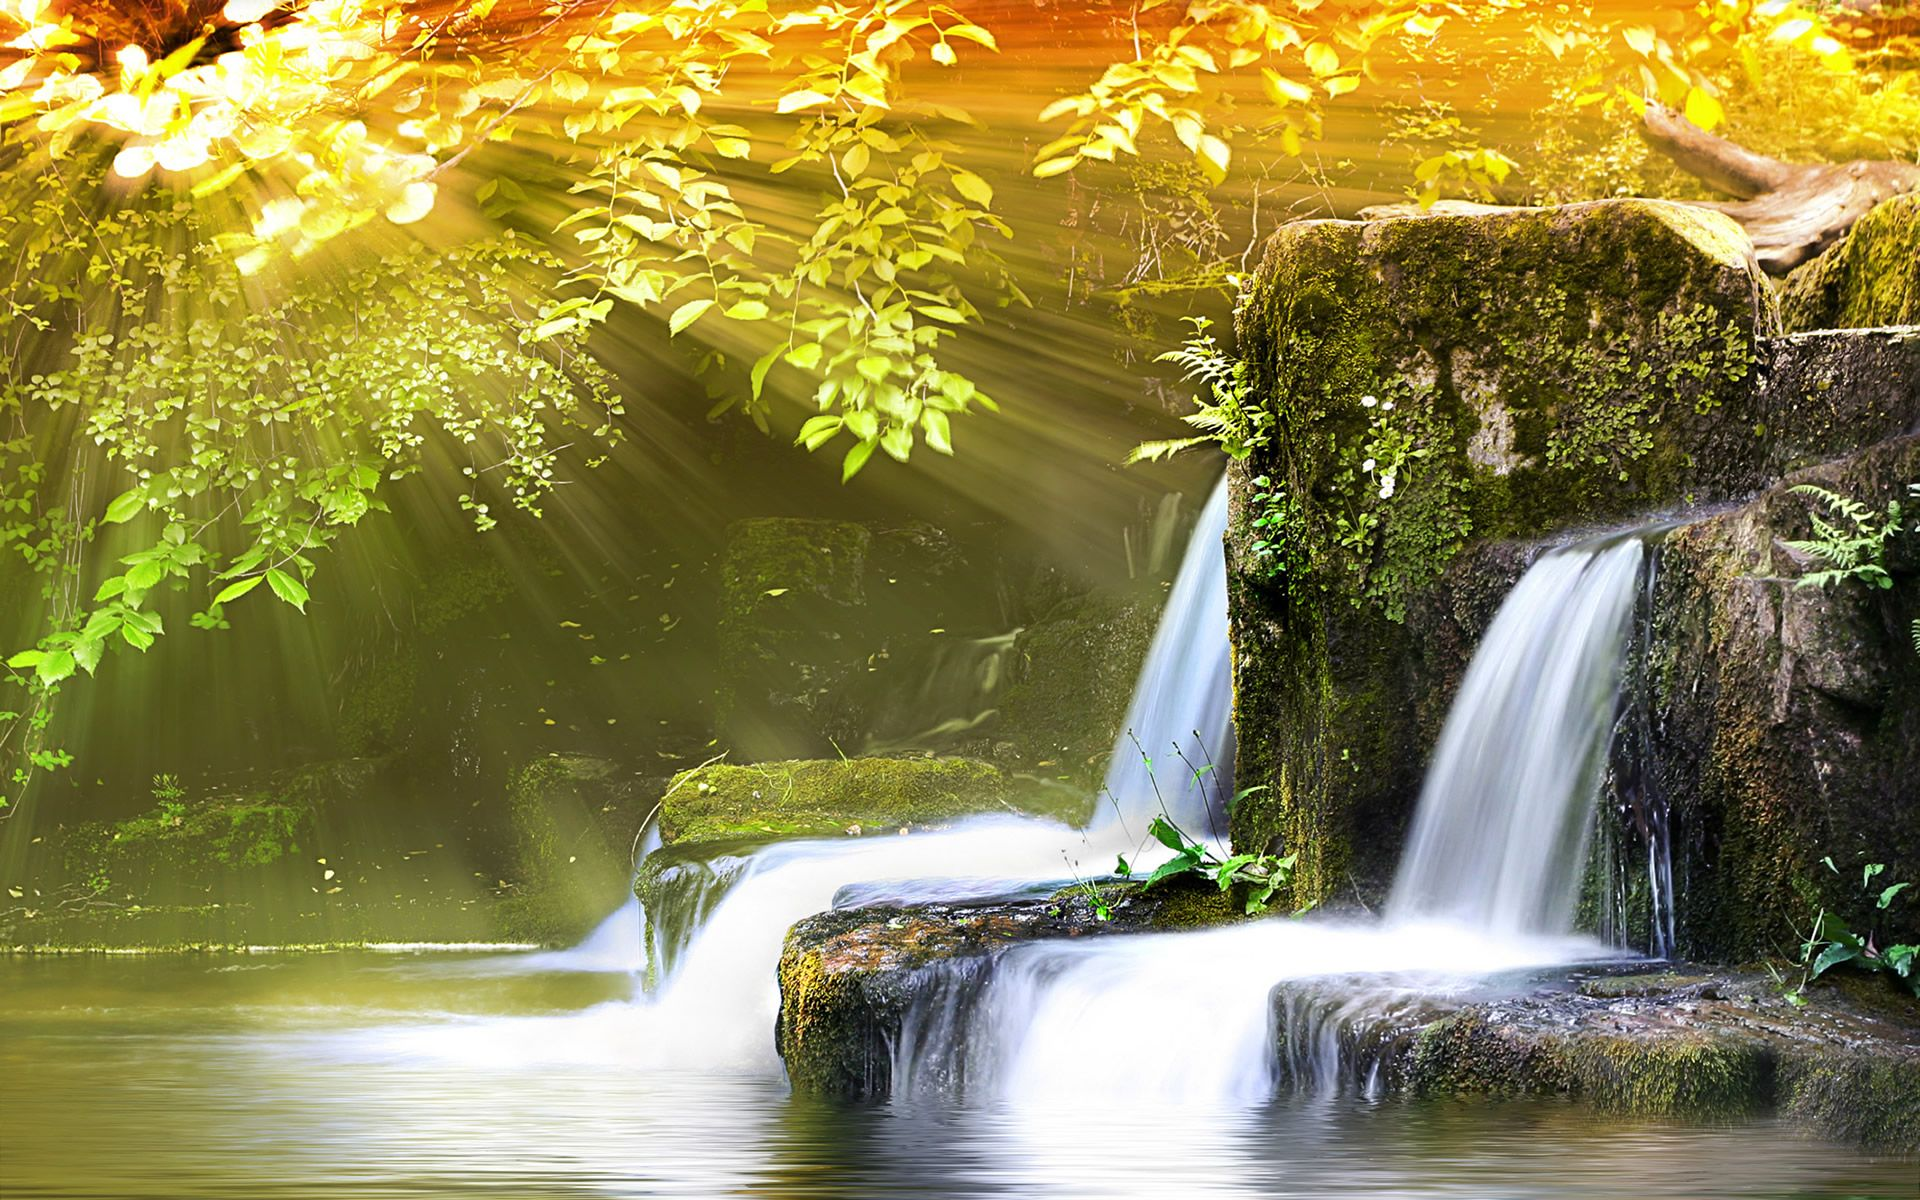 Find Out Beautiful Spring View Wallpaper On Http Hdpicorner Com Beautiful Spring View Waterfall Pictures Waterfall Wallpaper Beautiful Waterfalls